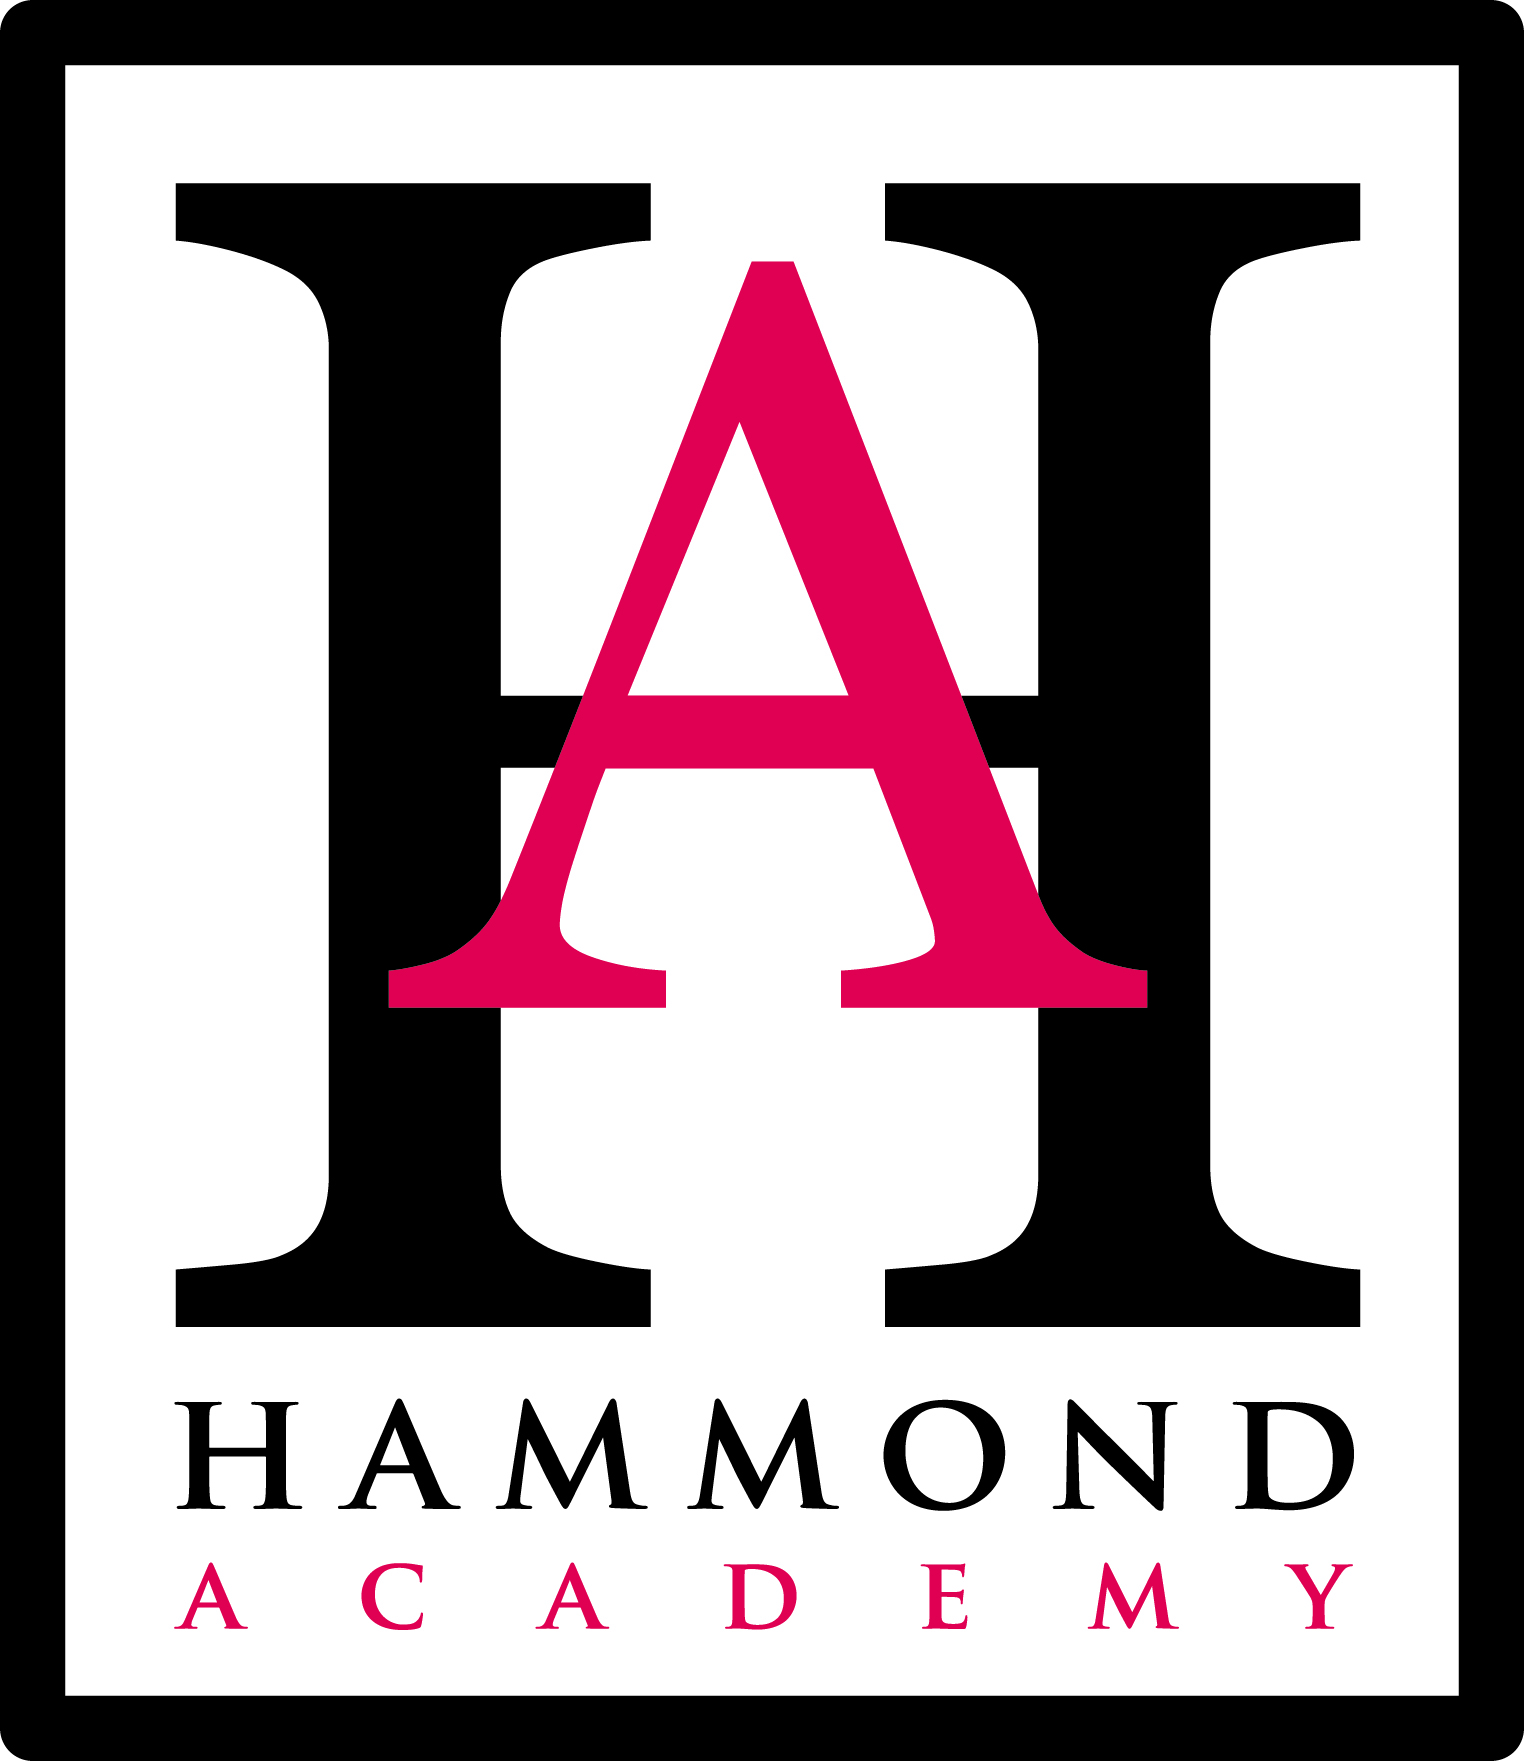 hammond_academy_logo_ajpg Teacher Training Application Form on